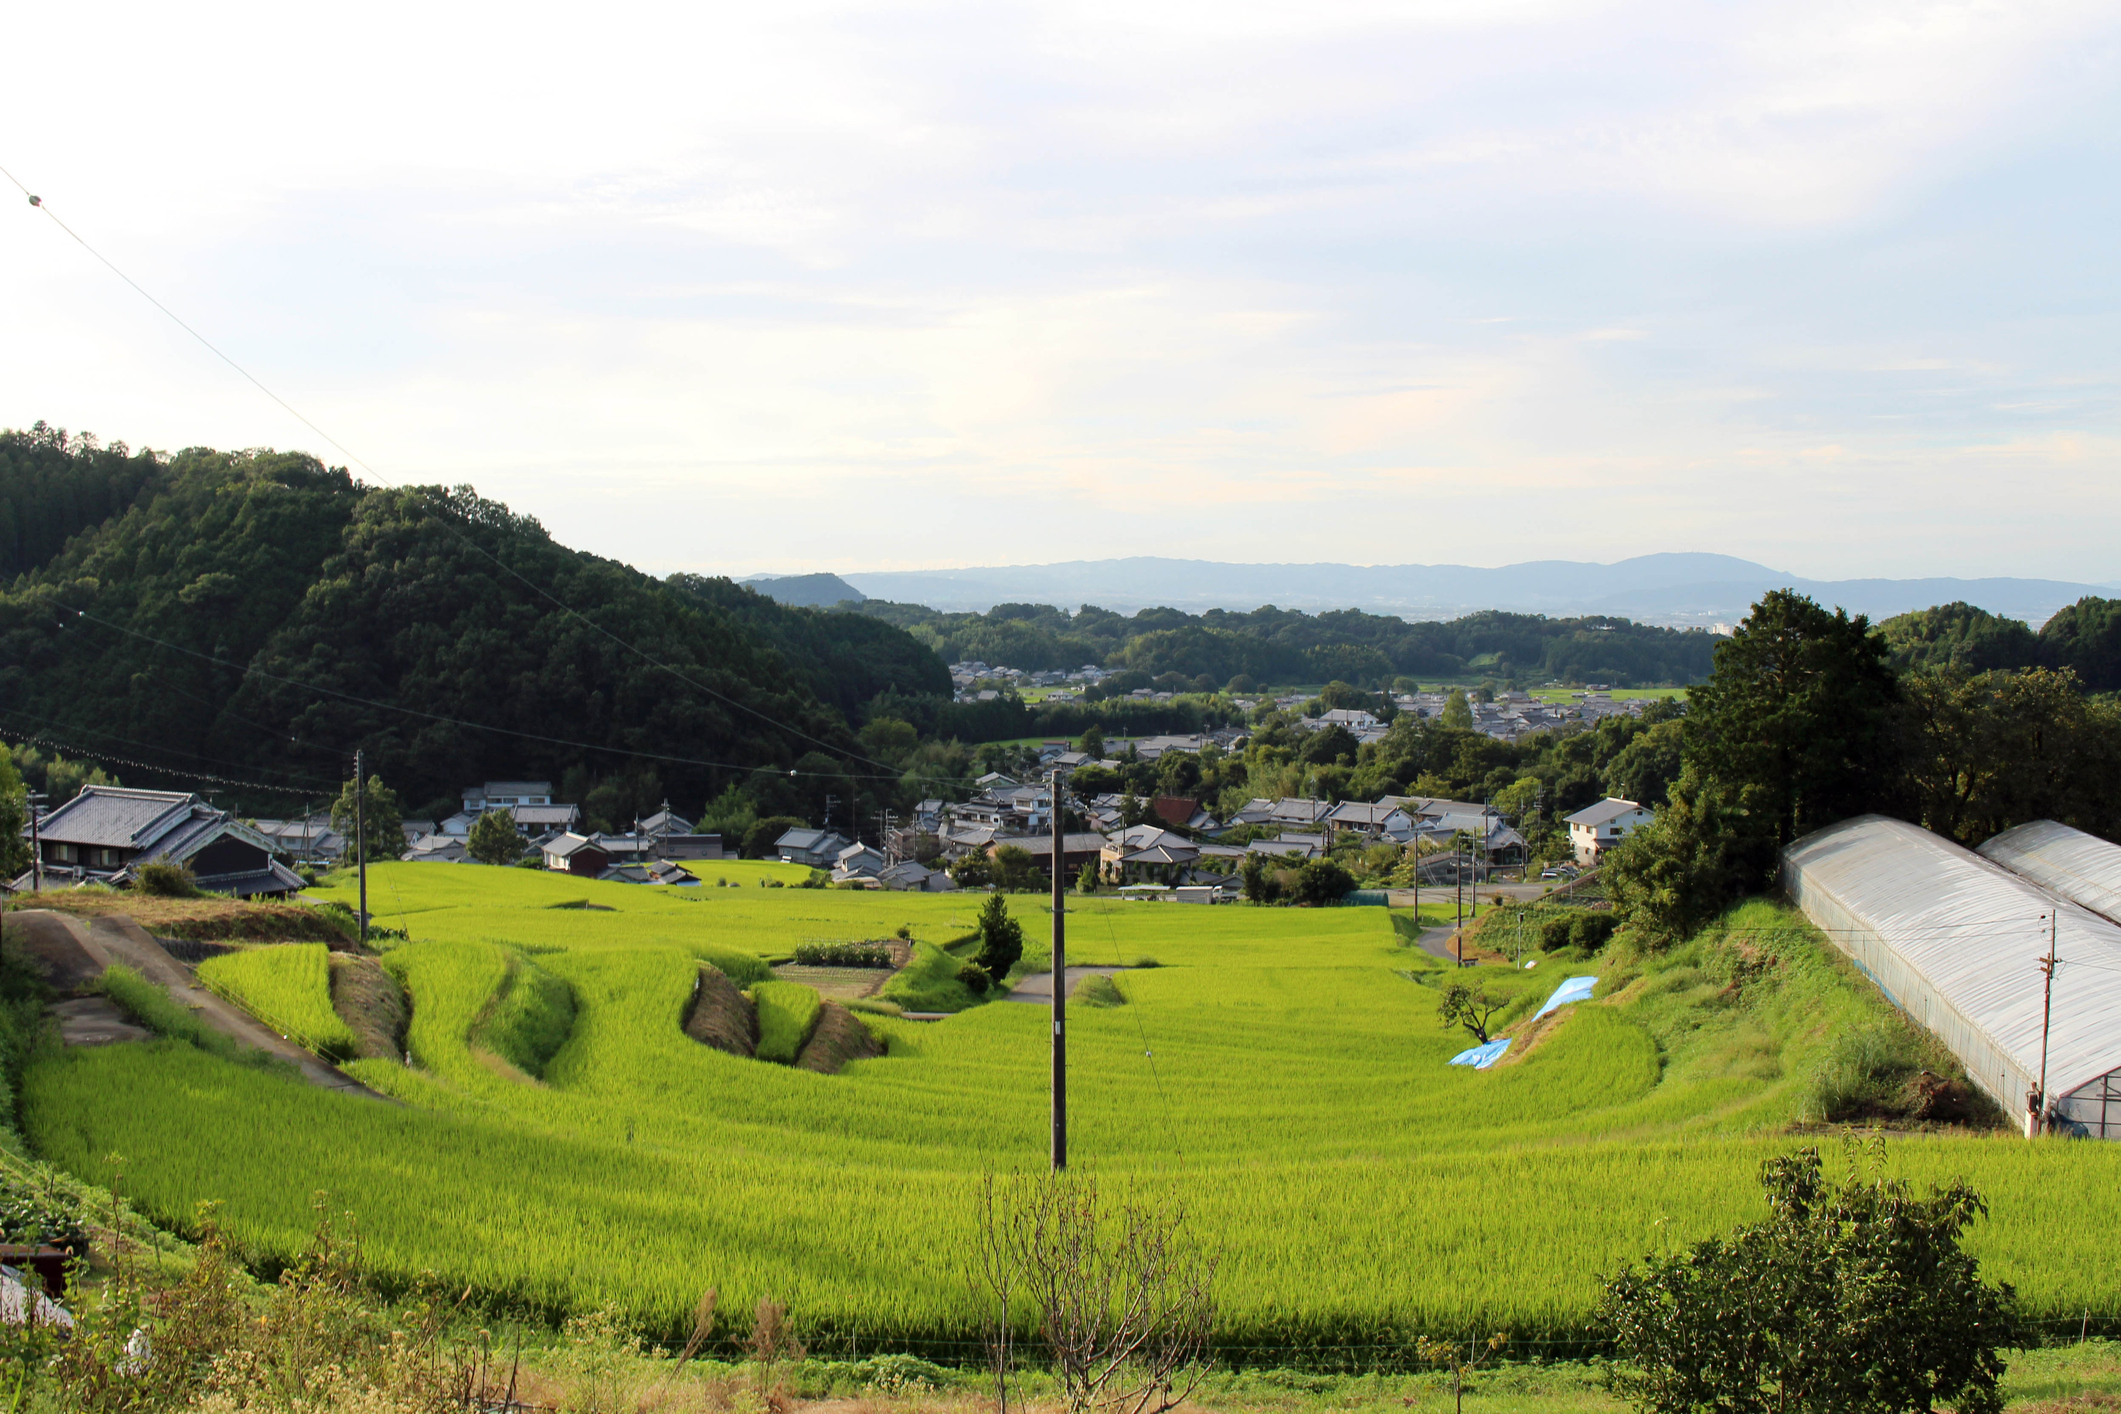 Housing complex in a village and paddy field in Asuka